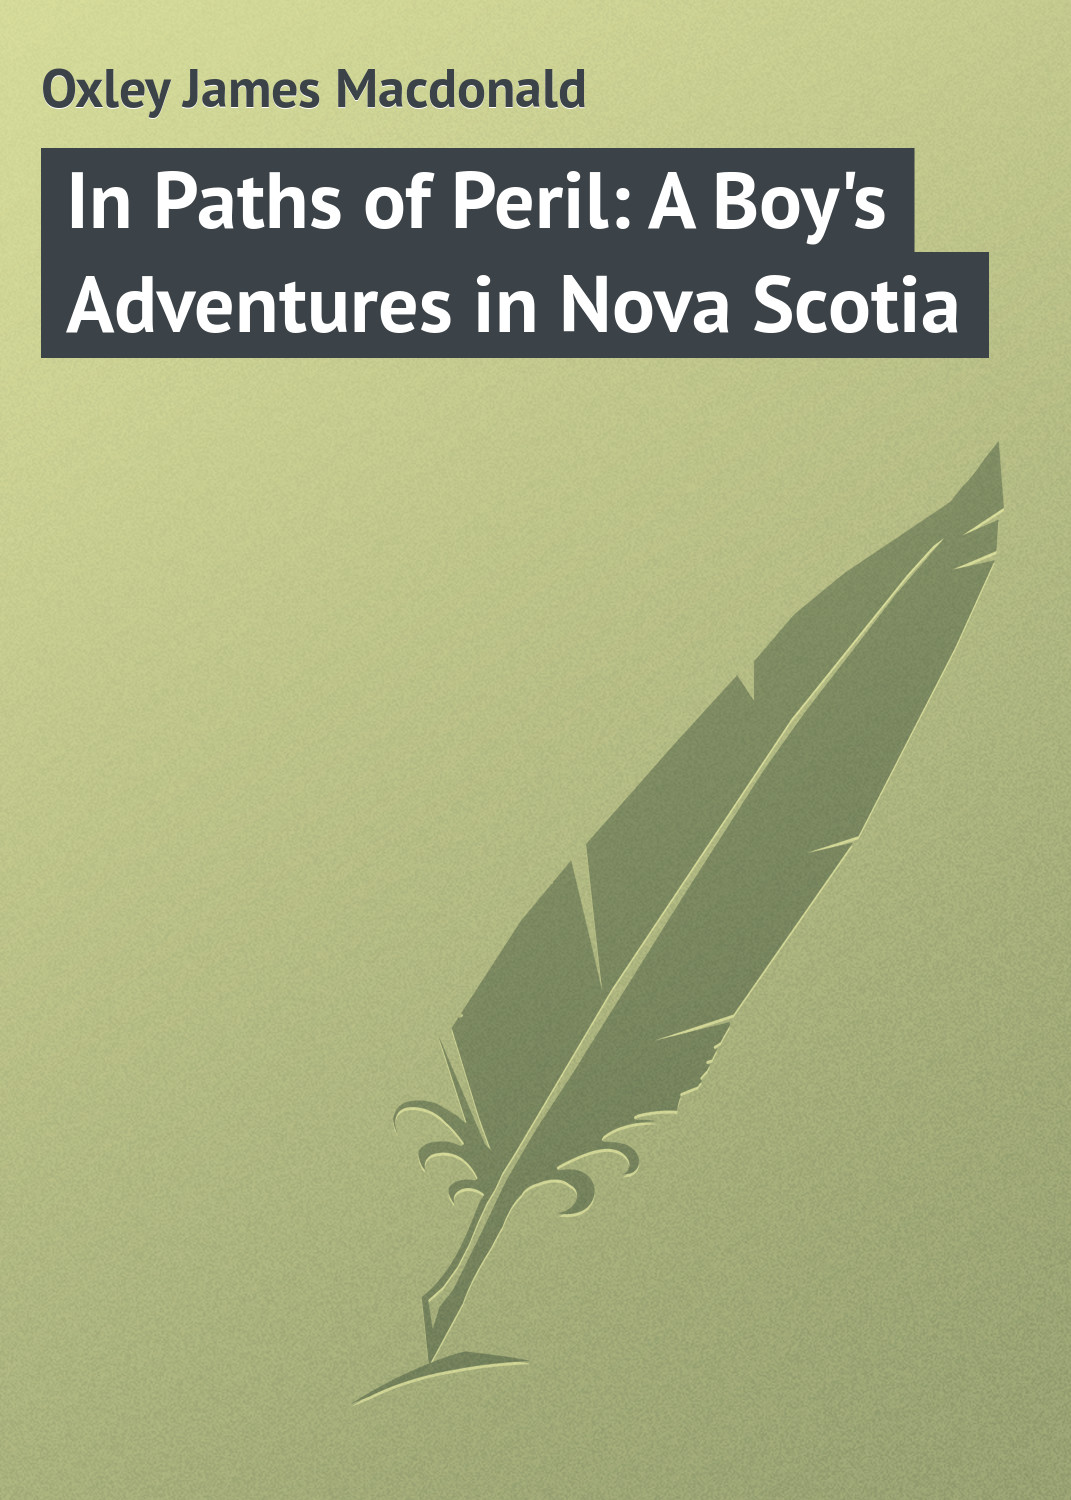 Oxley James Macdonald In Paths of Peril: A Boy's Adventures in Nova Scotia craig richardson adventures in python